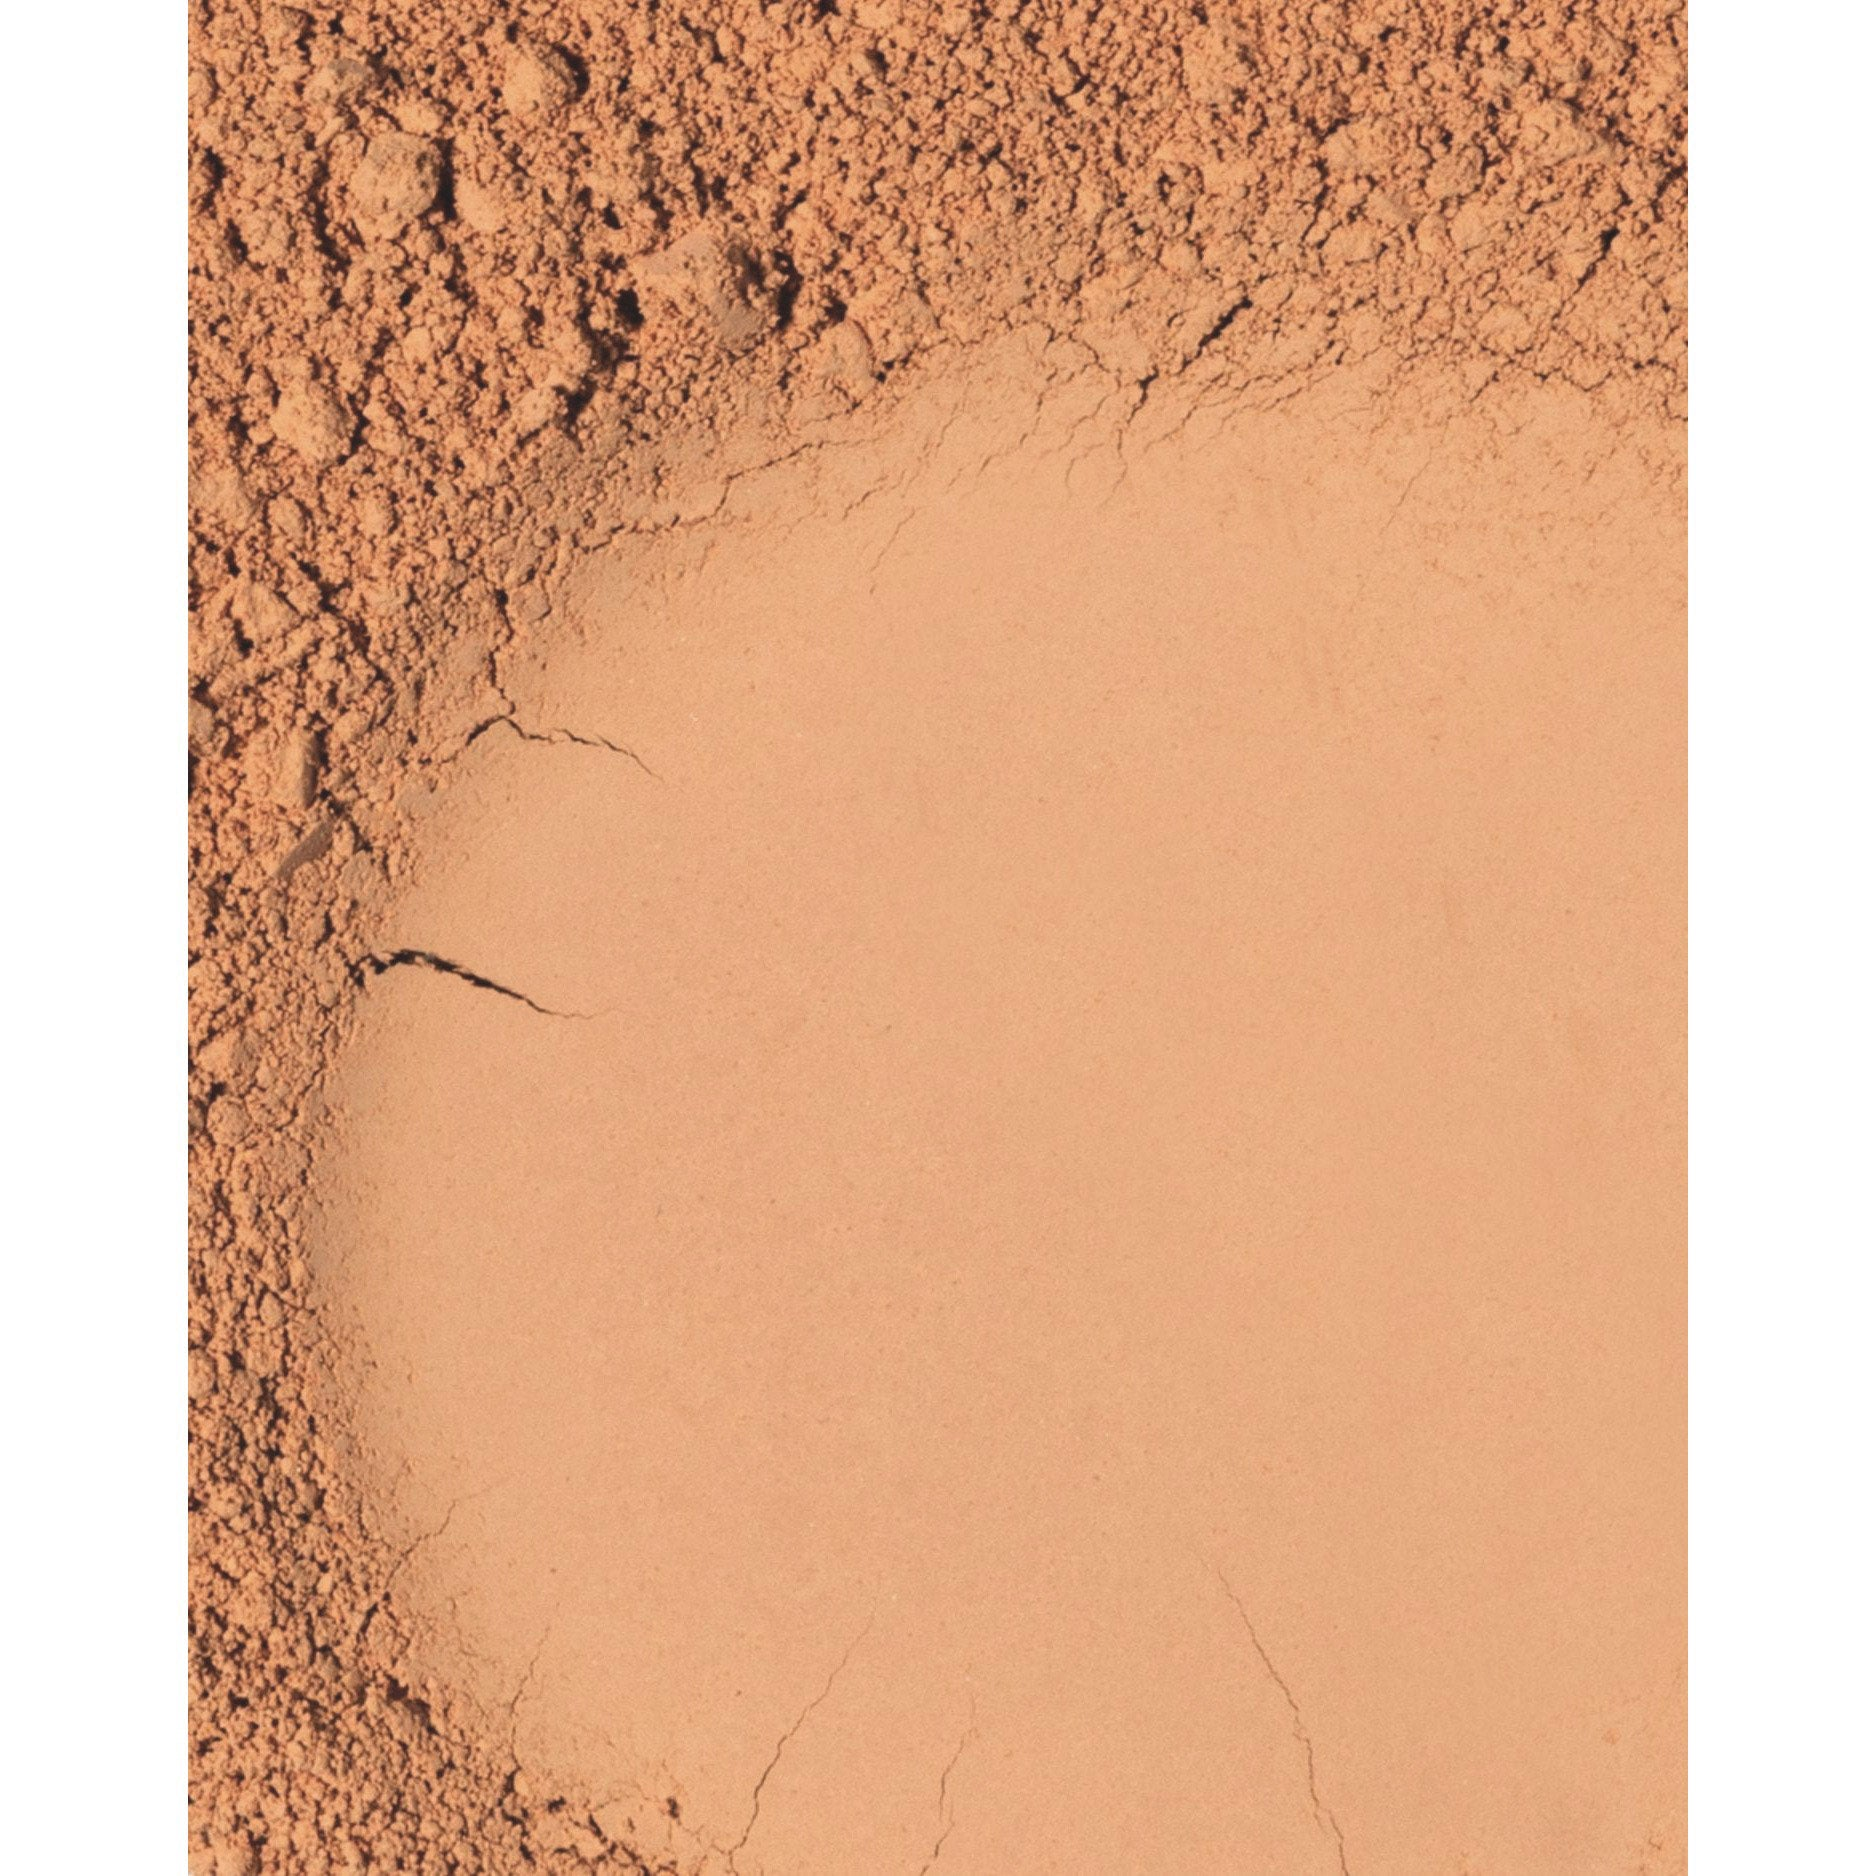 Considerate - Omiana Loose Powder Mineral Foundation No Titanium Dioxide and No Mica